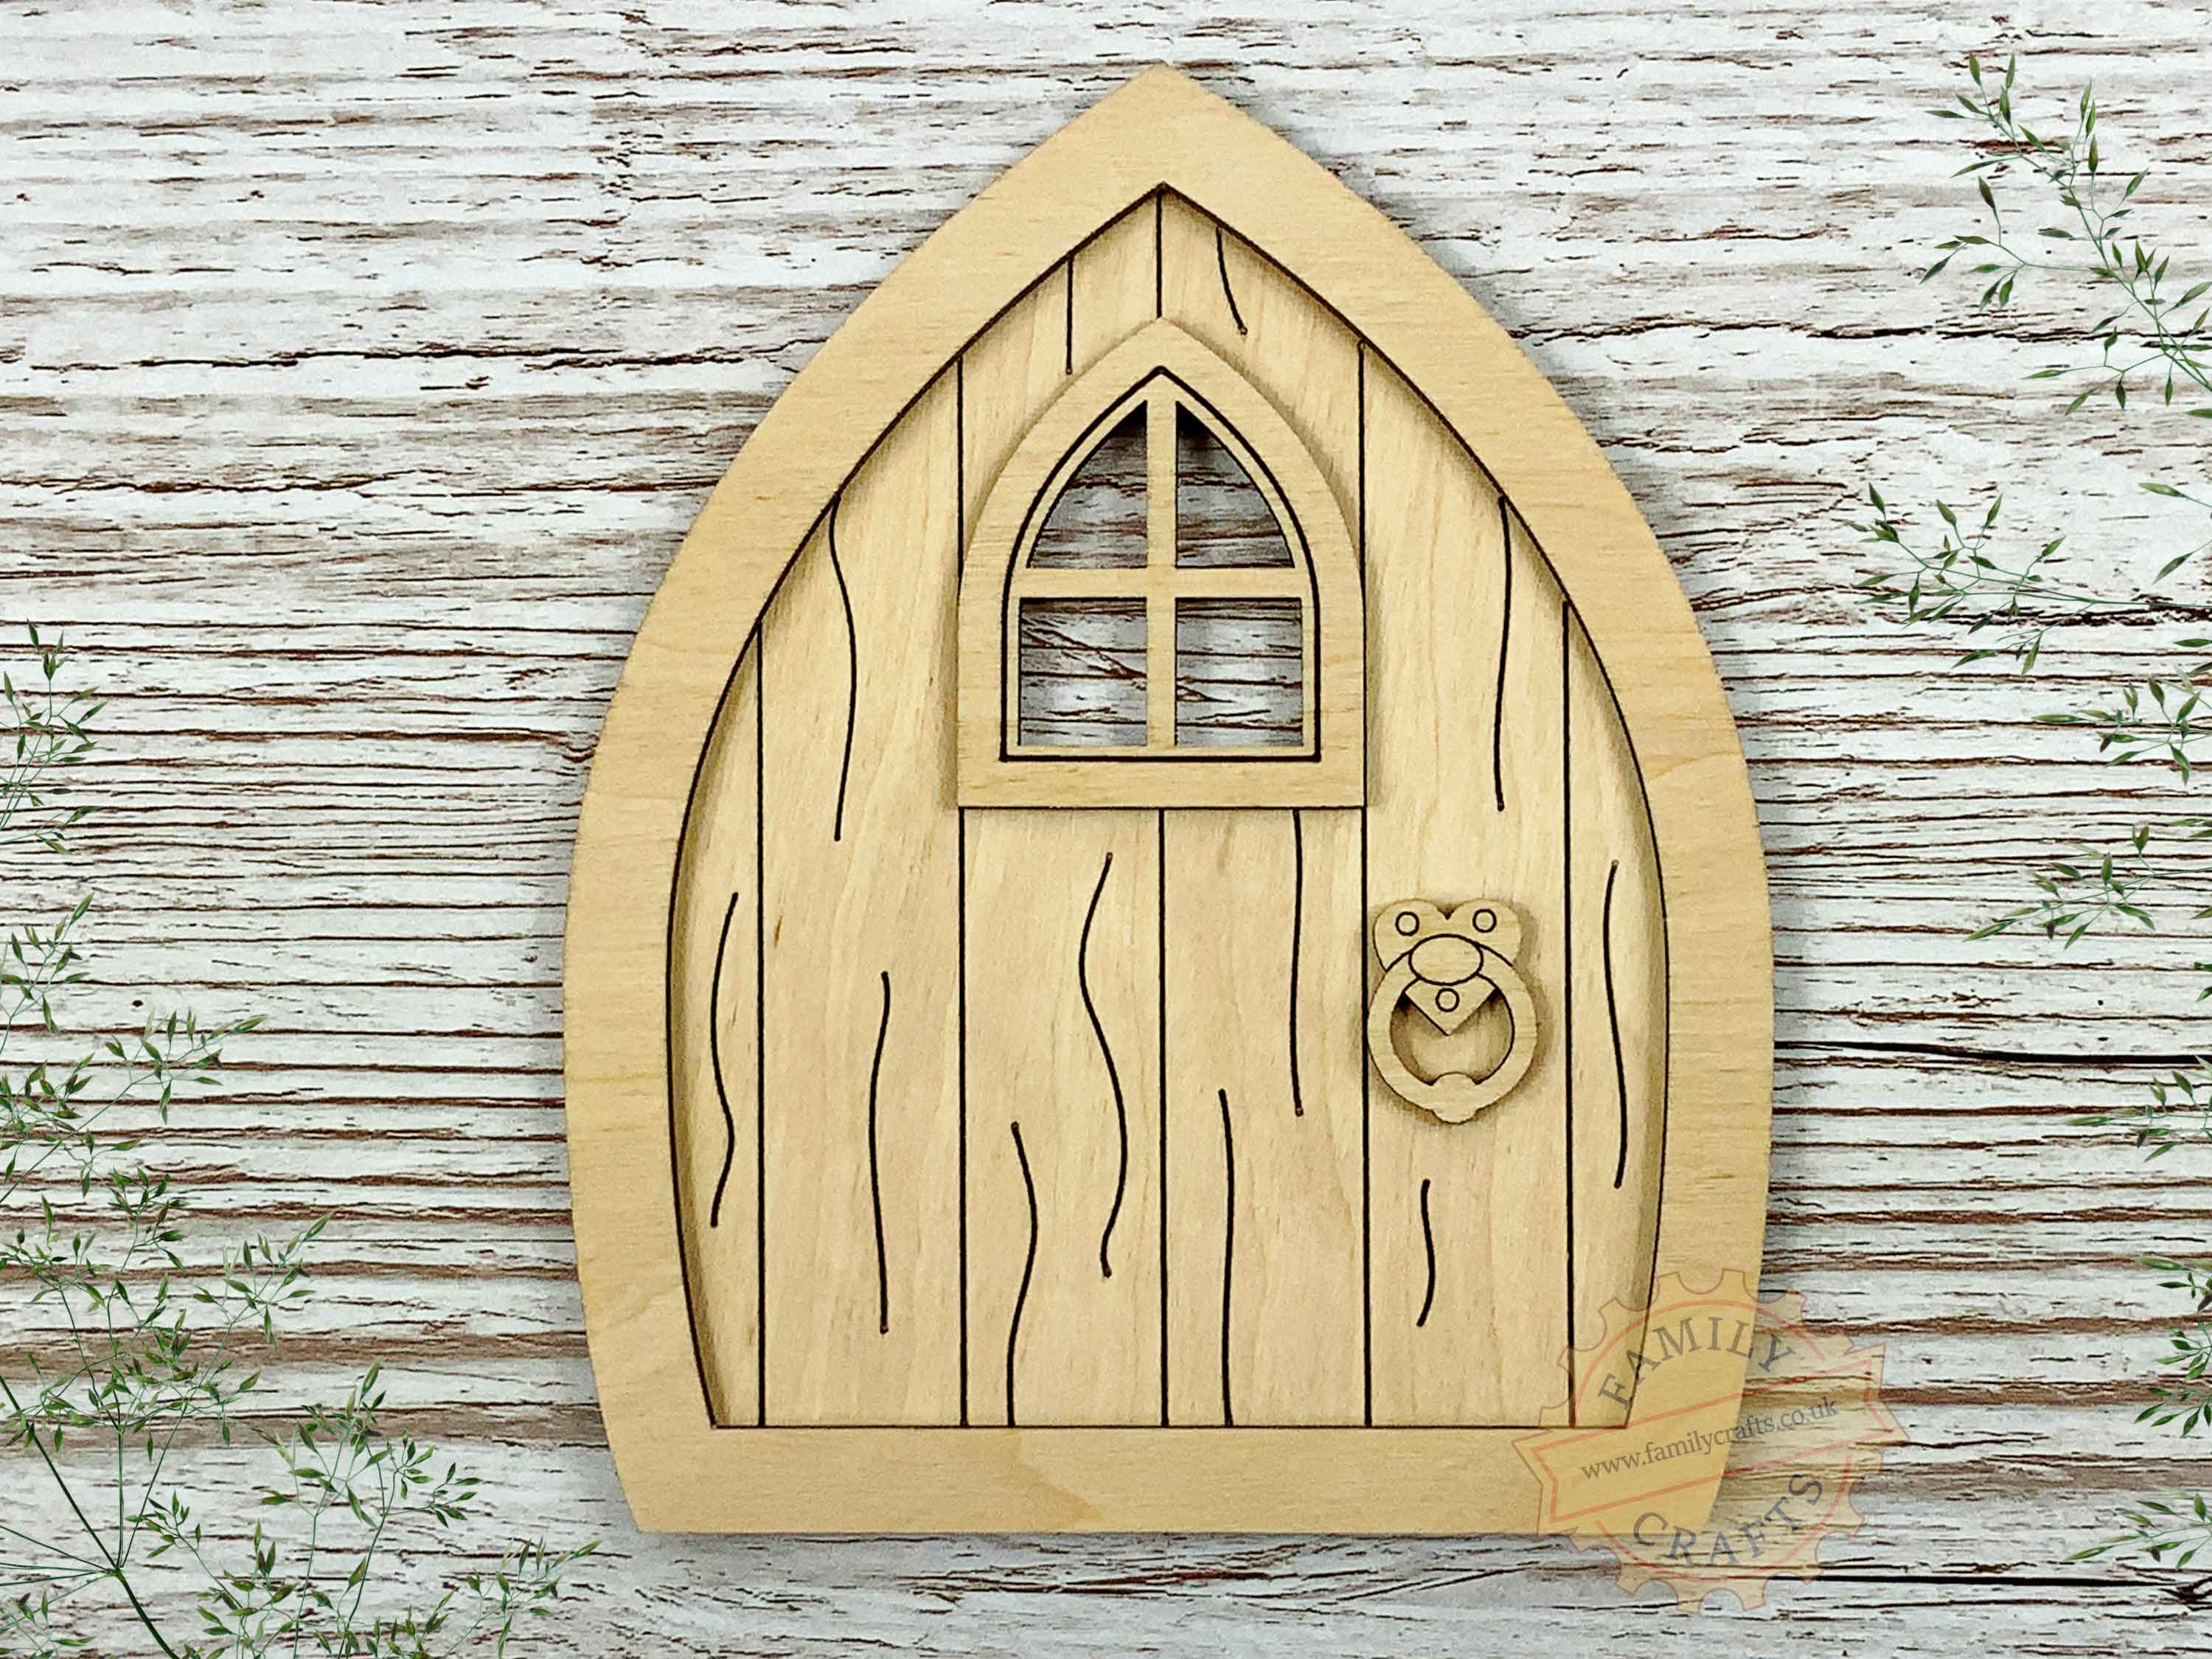 plywood pointed fairy door kit with woodgrain